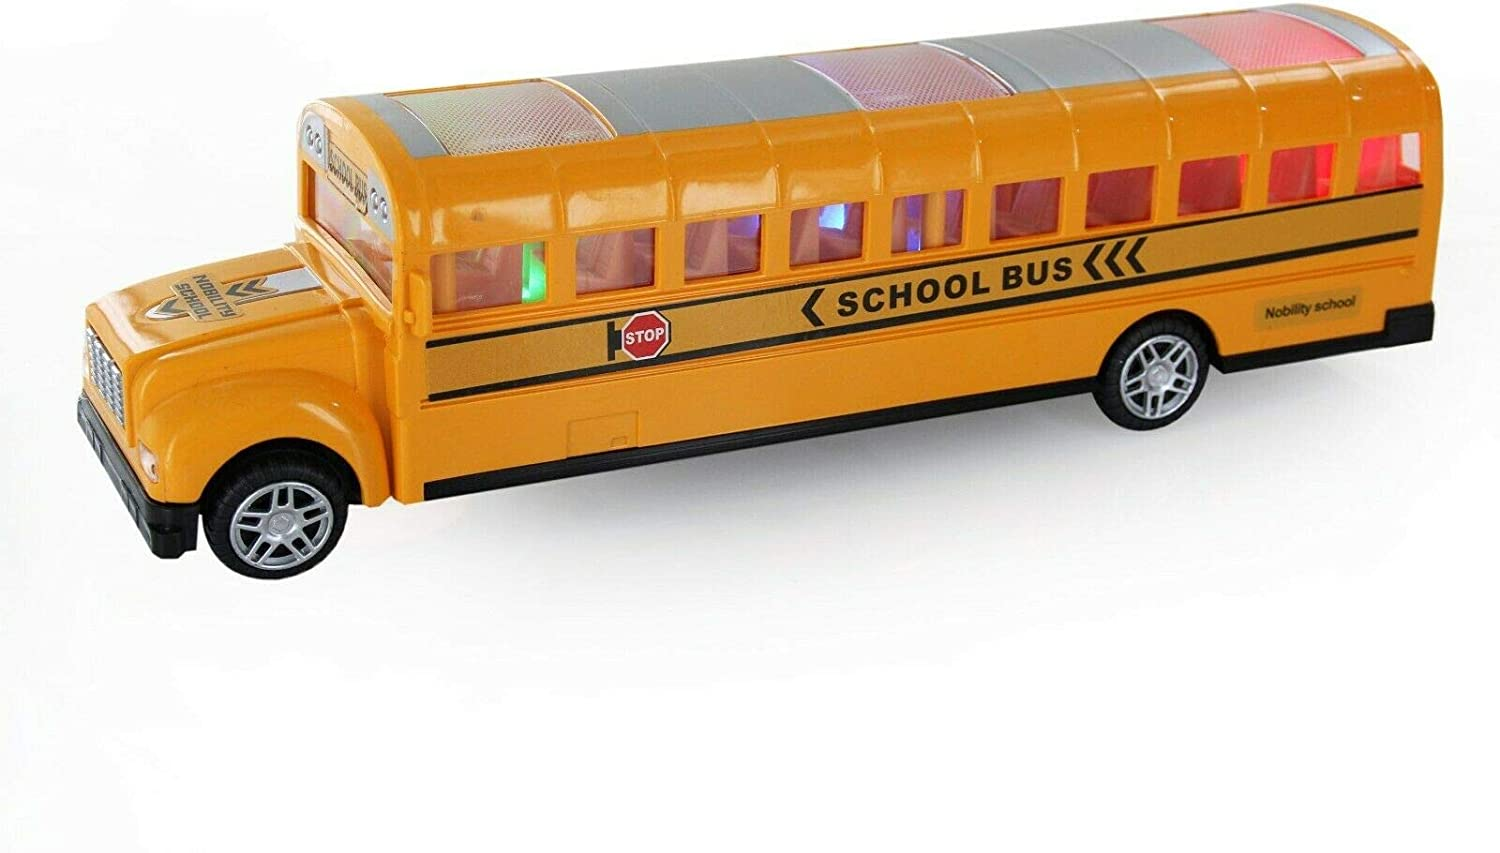 11 Inches Die-Cast New York Super School Bus Battery Operated Function Realistic Detailing Lights and Music Sounds Bump and Go Action Idea Gift